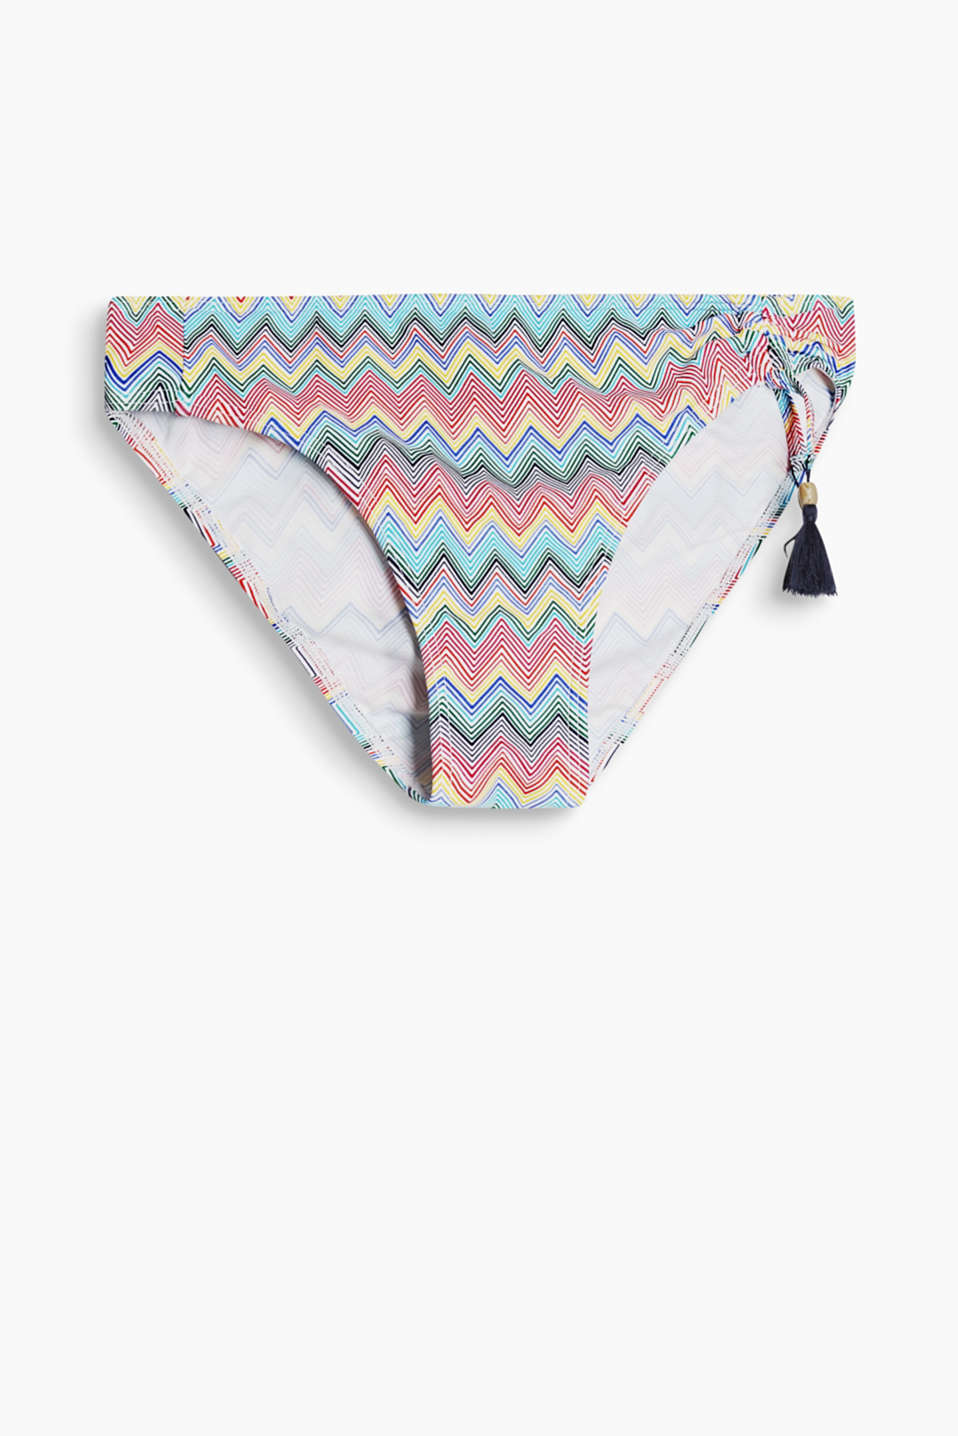 Collection: CLURES - bikini bottoms with a zigzag print and tassels